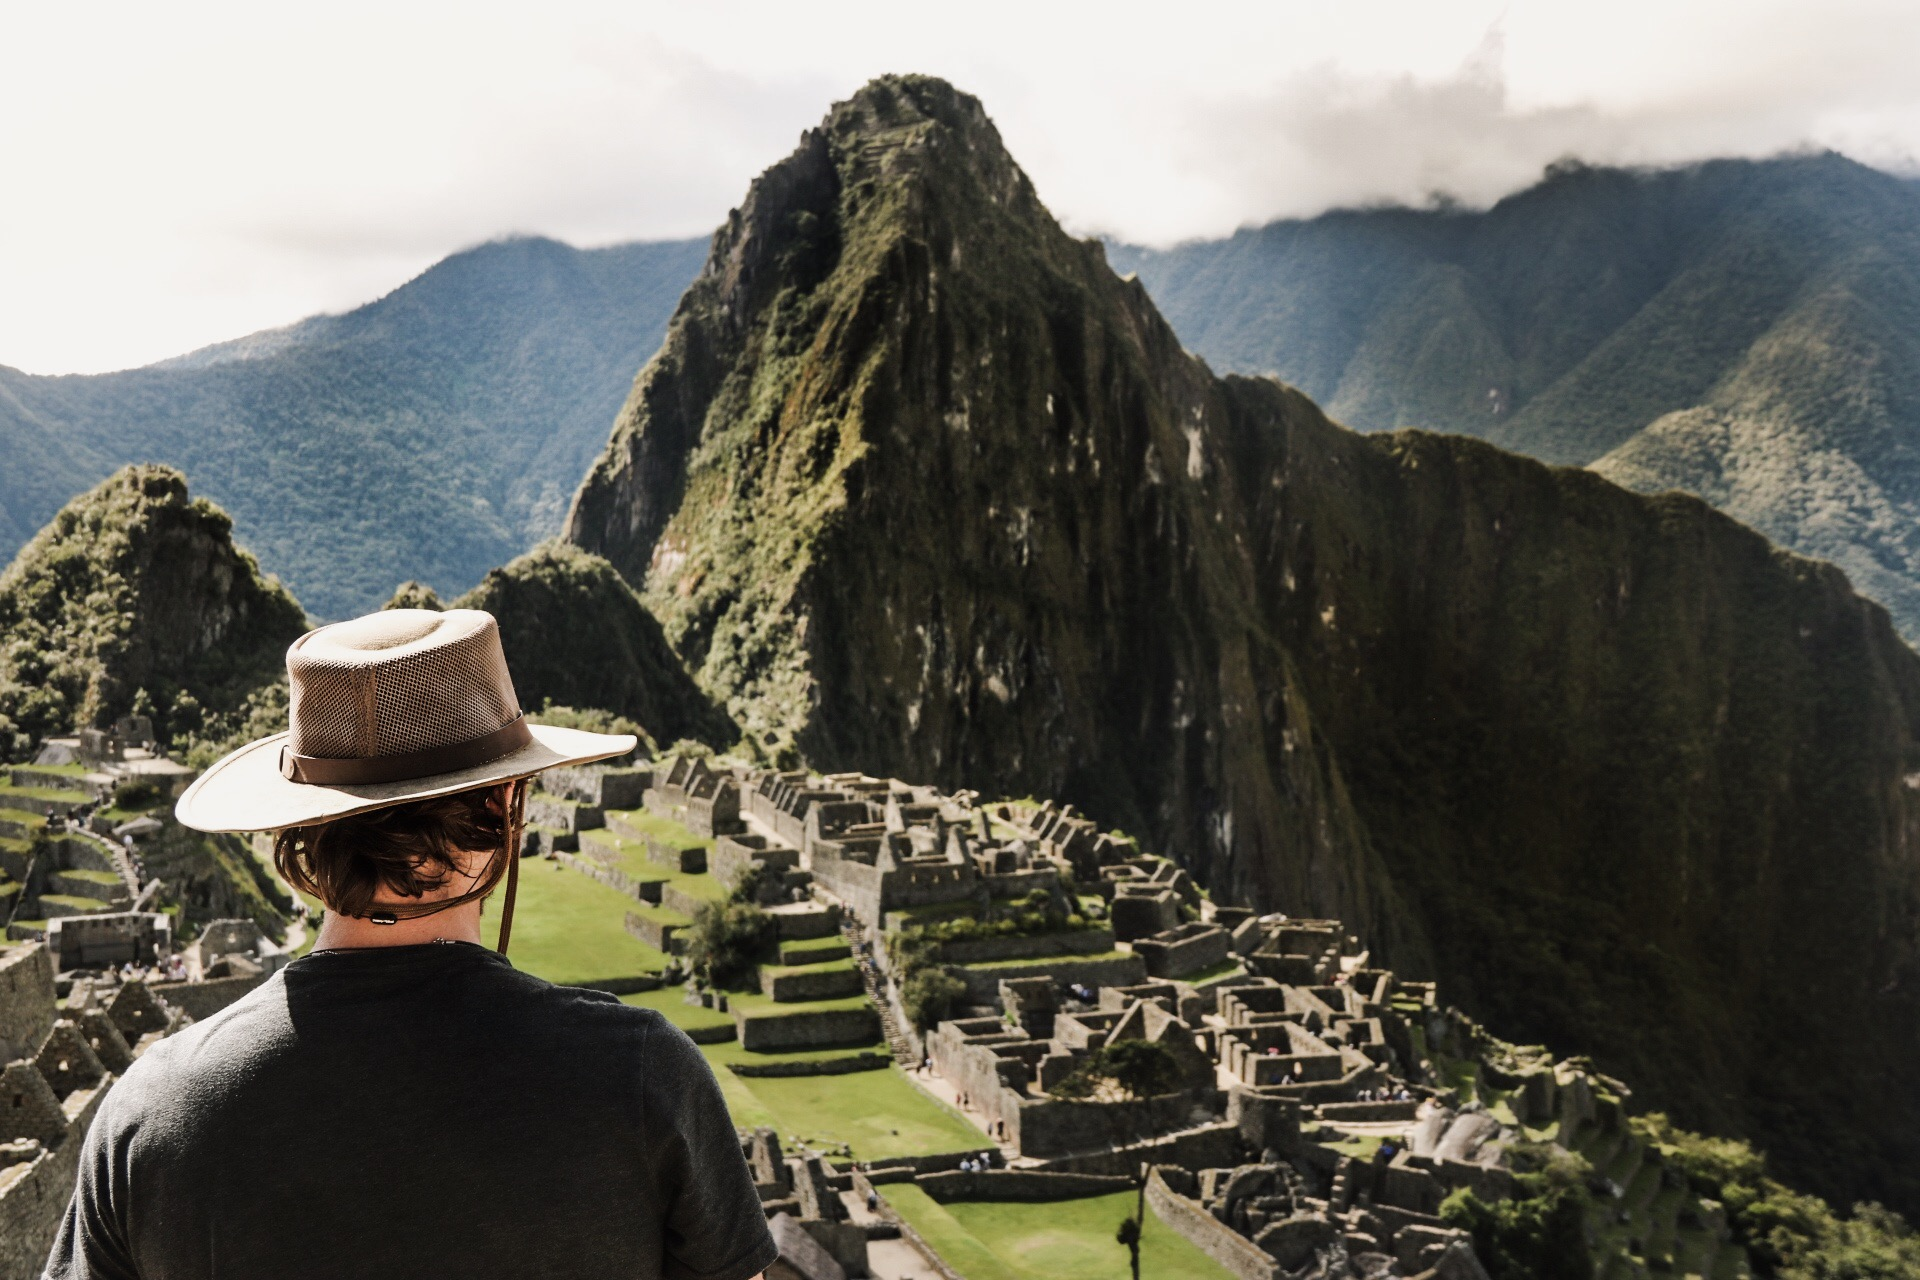 Trevor looking out at the Inca Ruins.